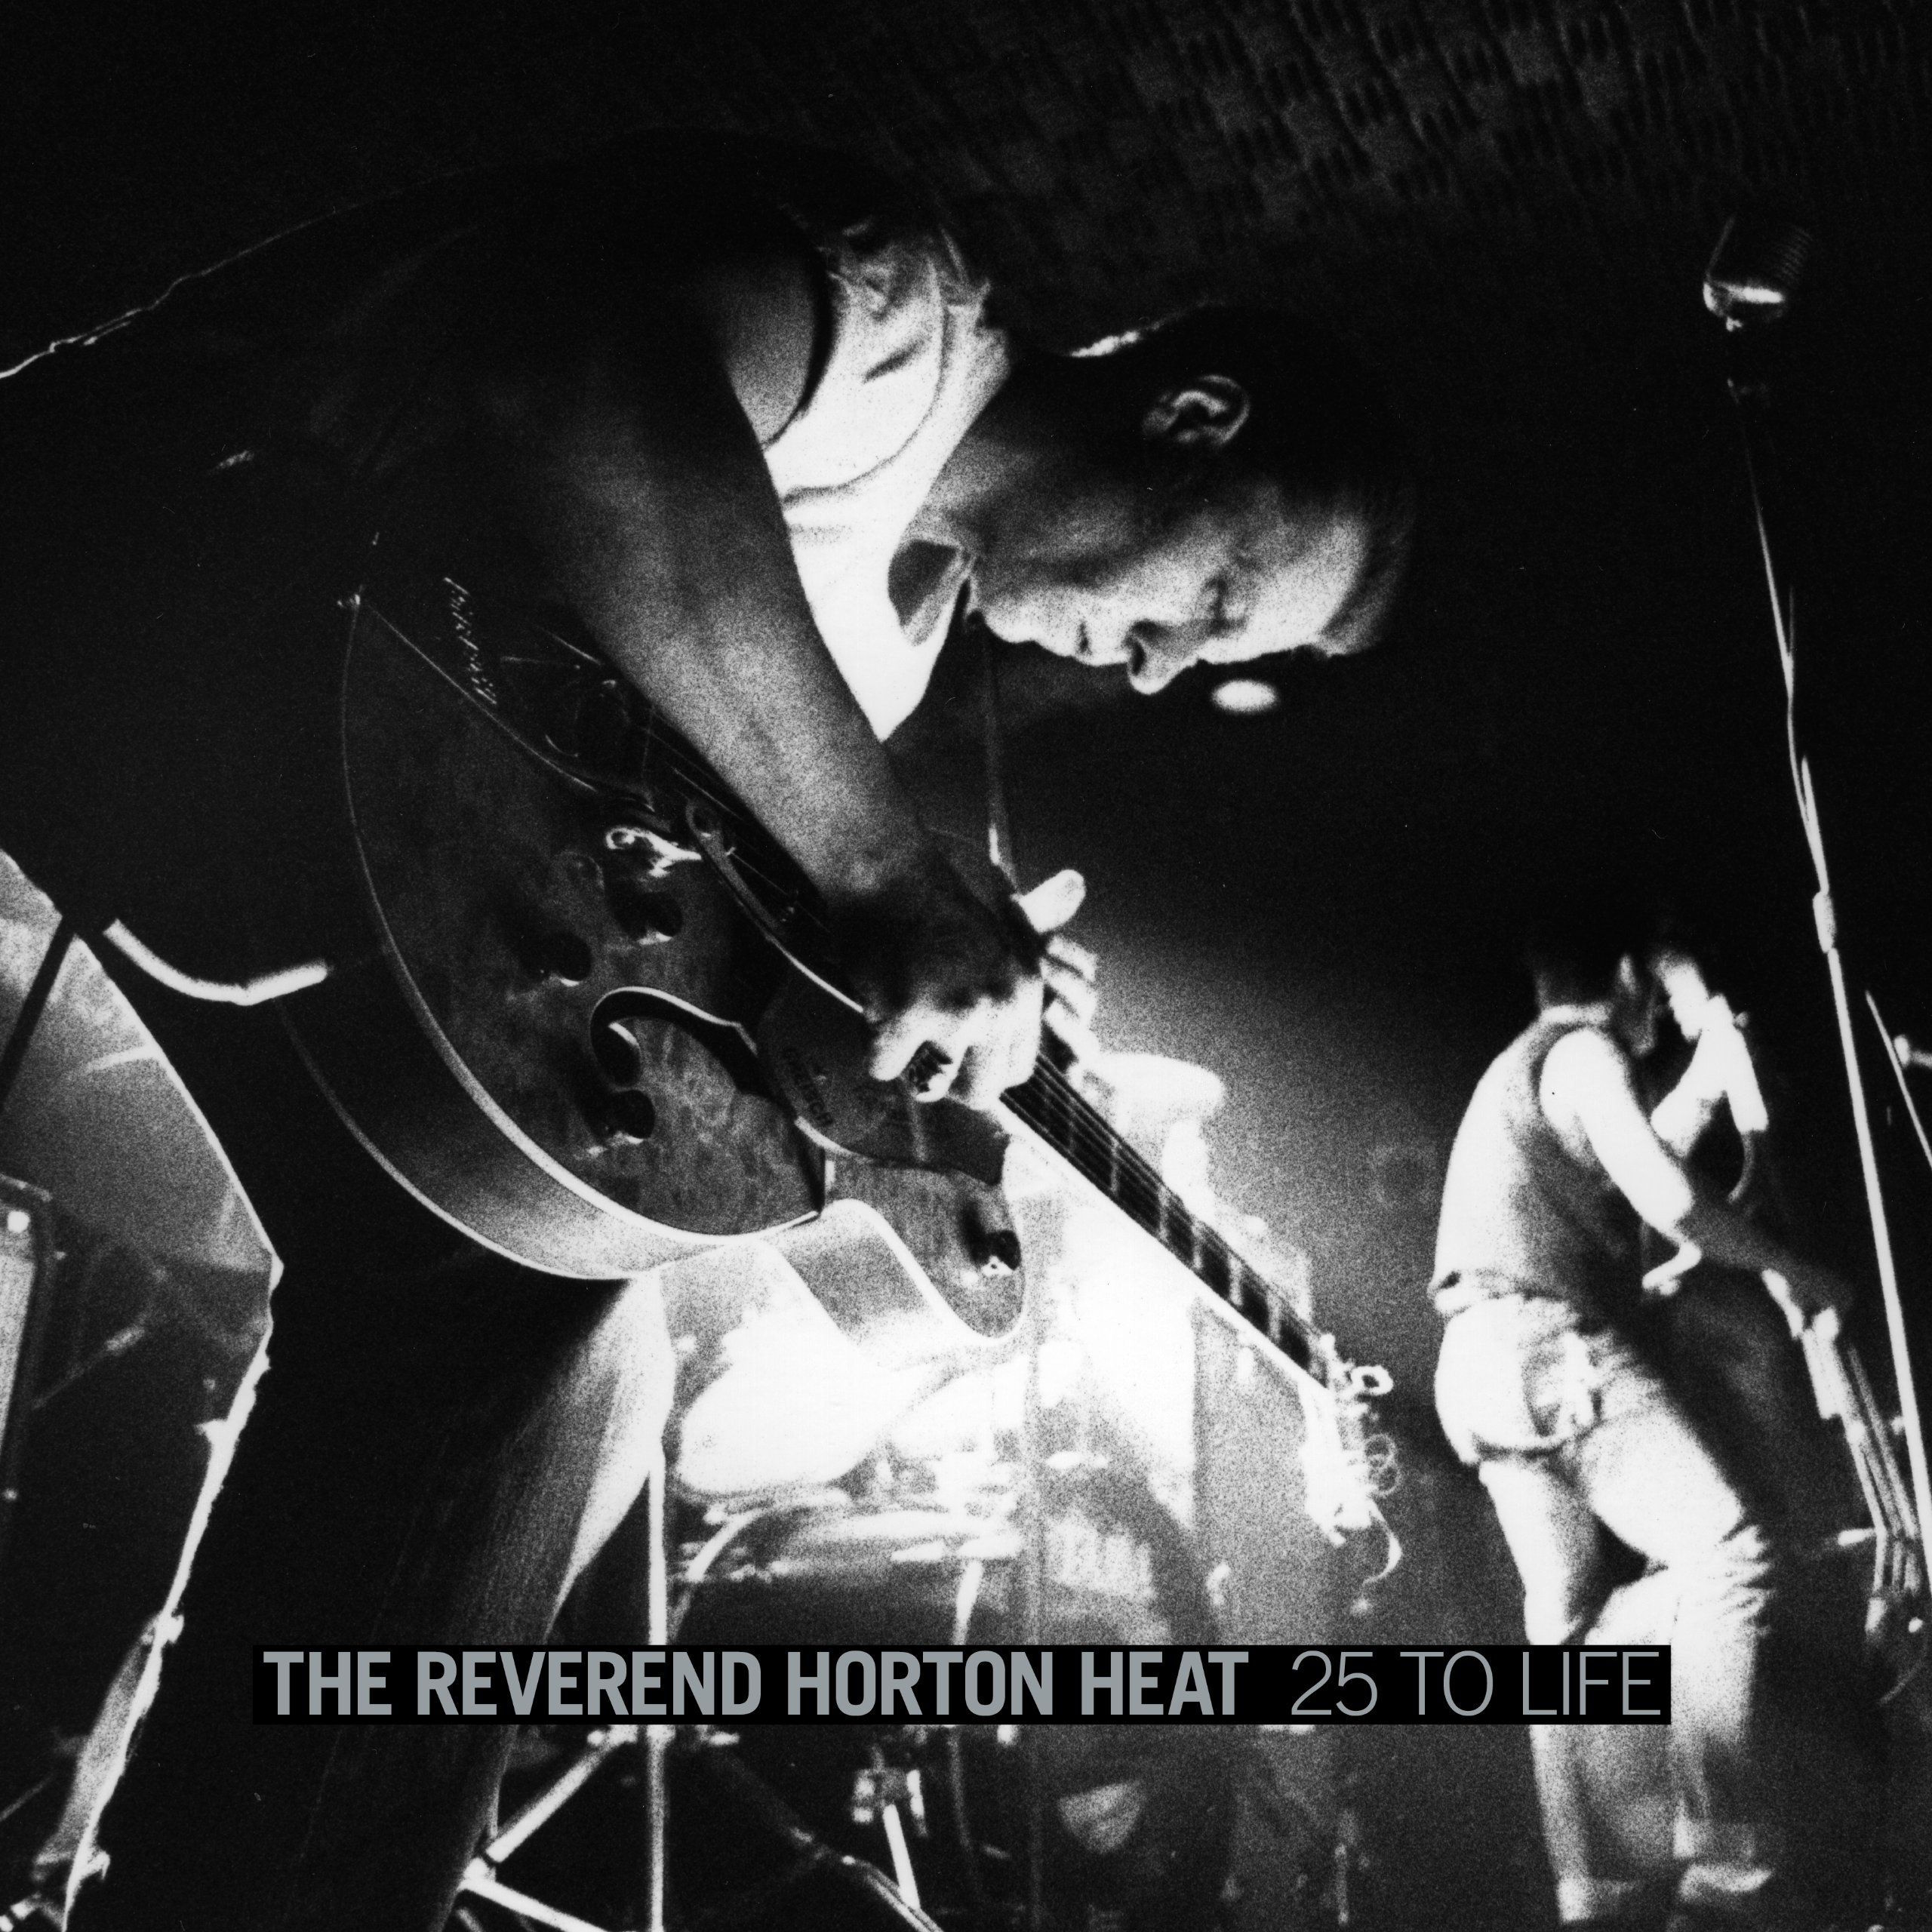 25 To Life by Reverend Horton Heat